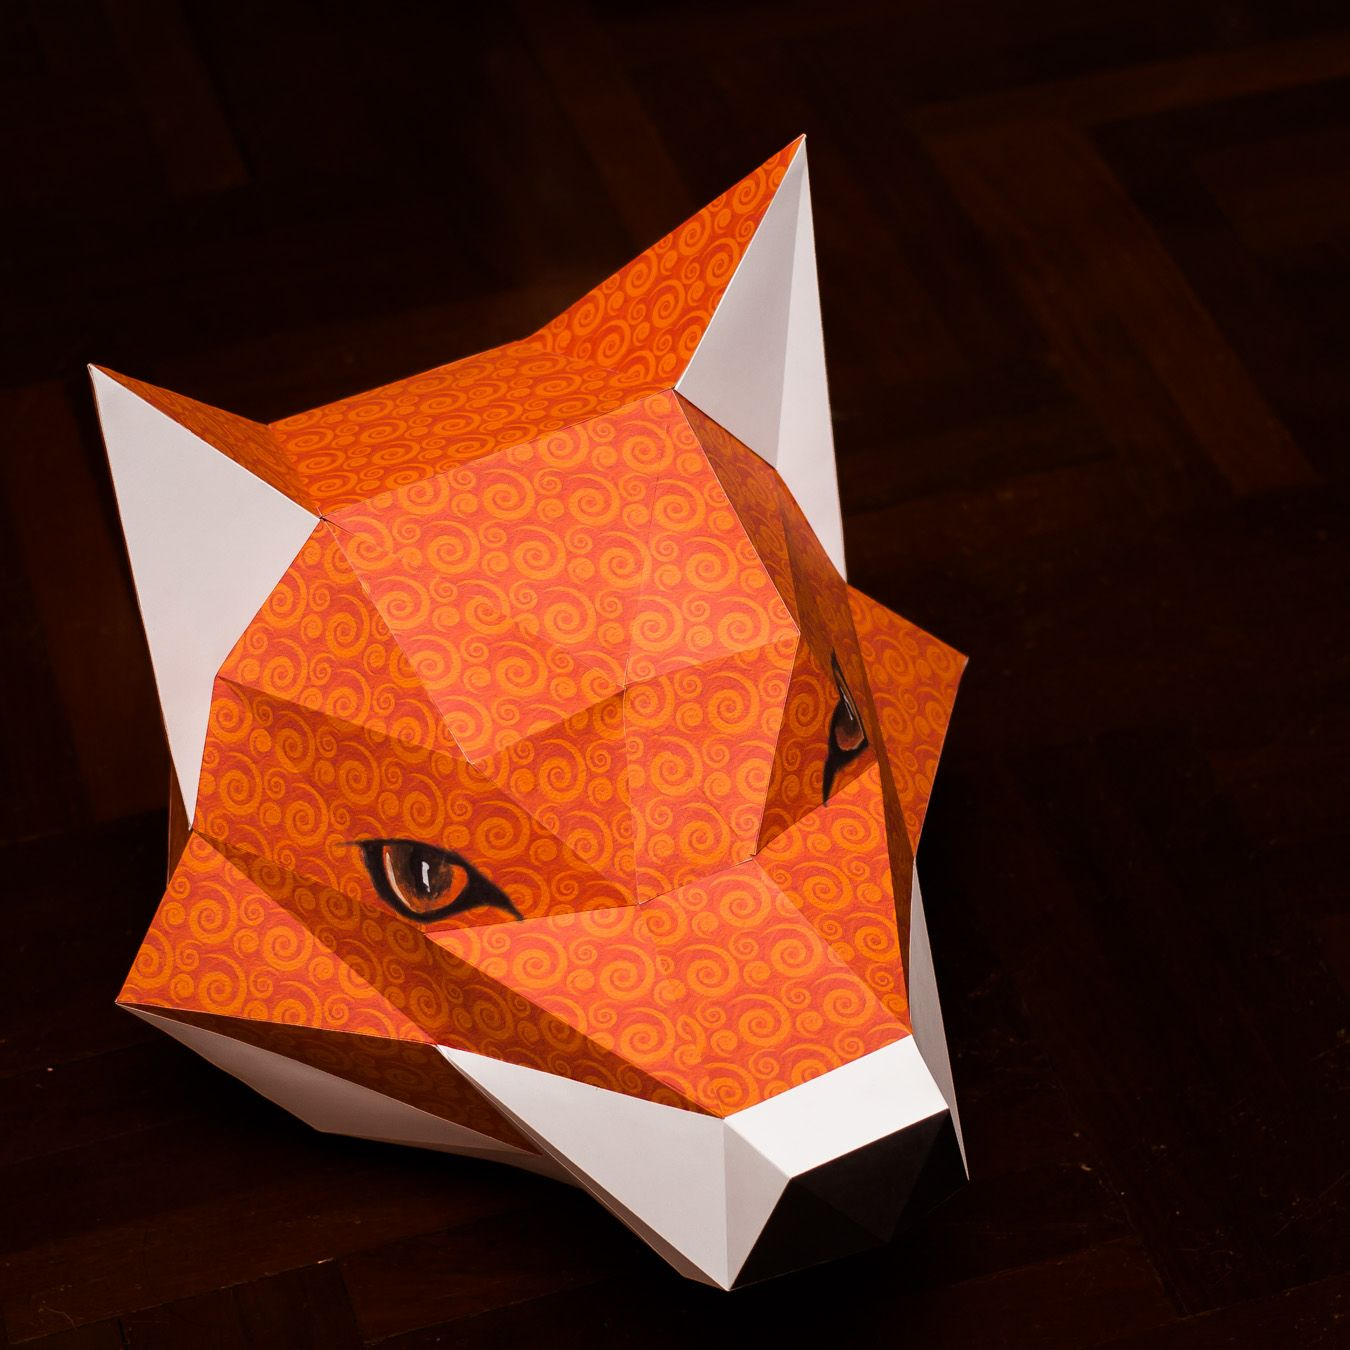 fox head mask papercraft model 3d paper model instruction 1 jeuxipadfo Image collections